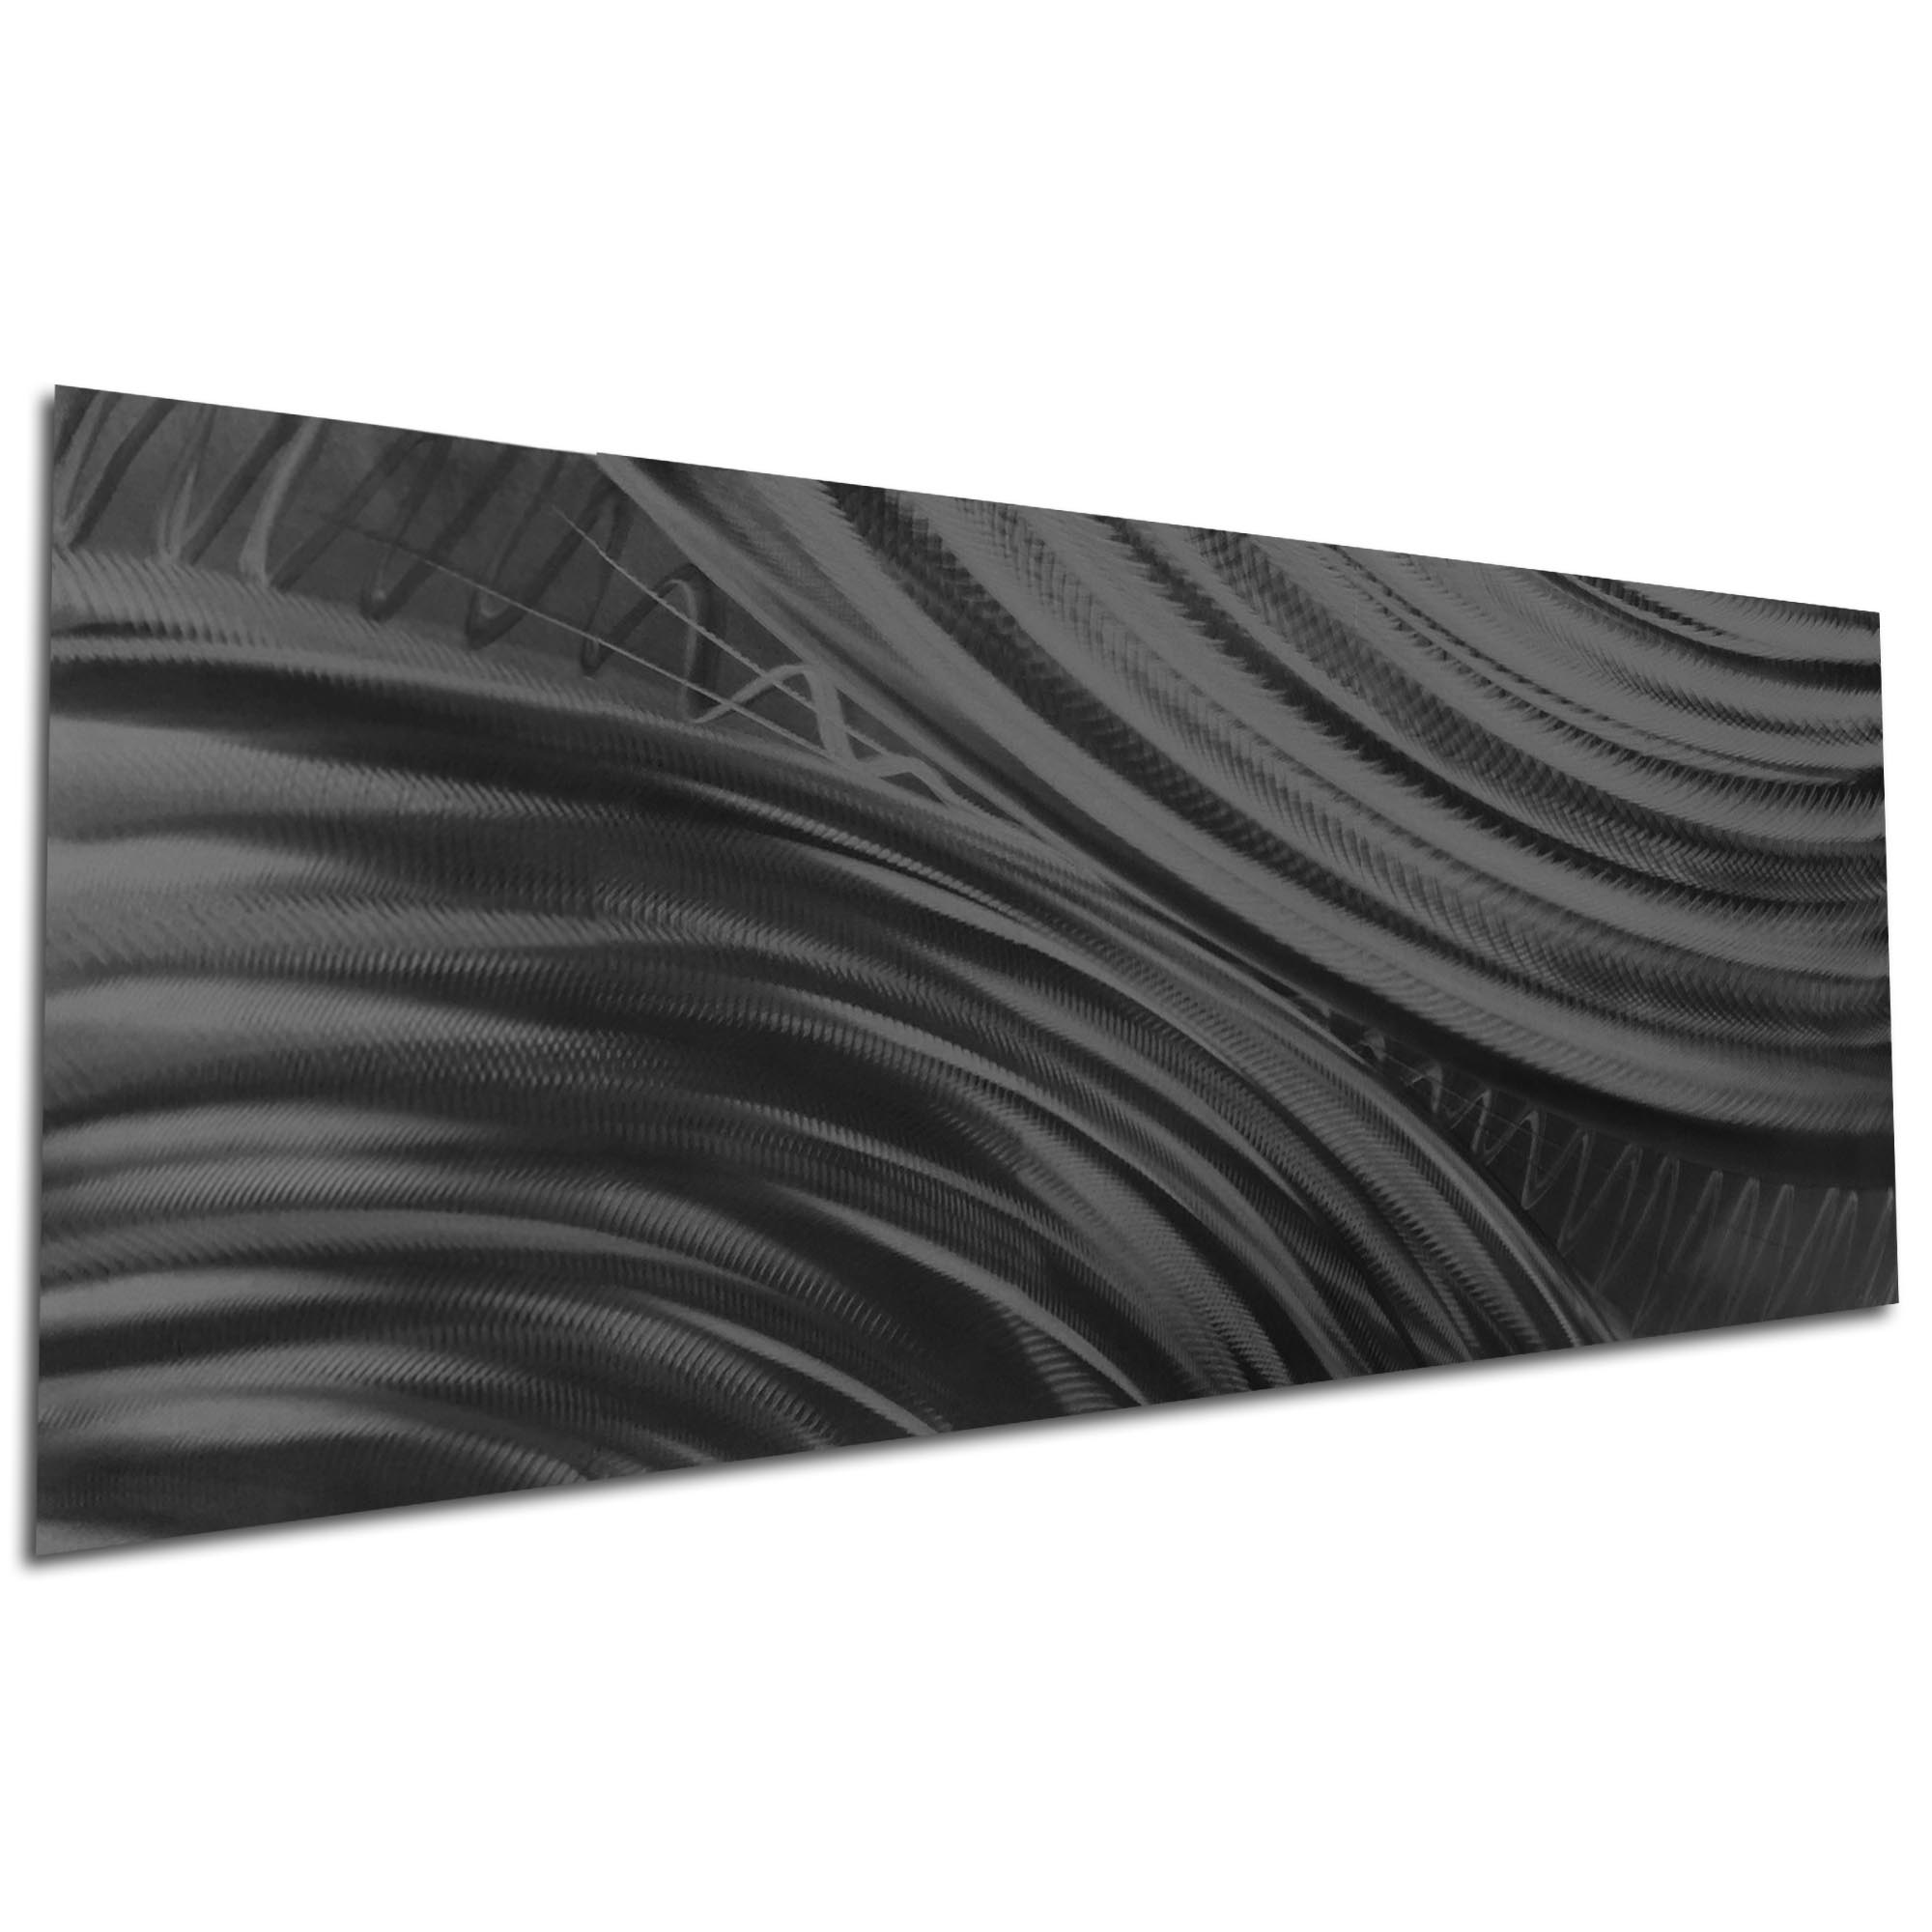 Moment of Impact Black by Helena Martin - Original Abstract Art on Ground and Painted Metal - Image 3